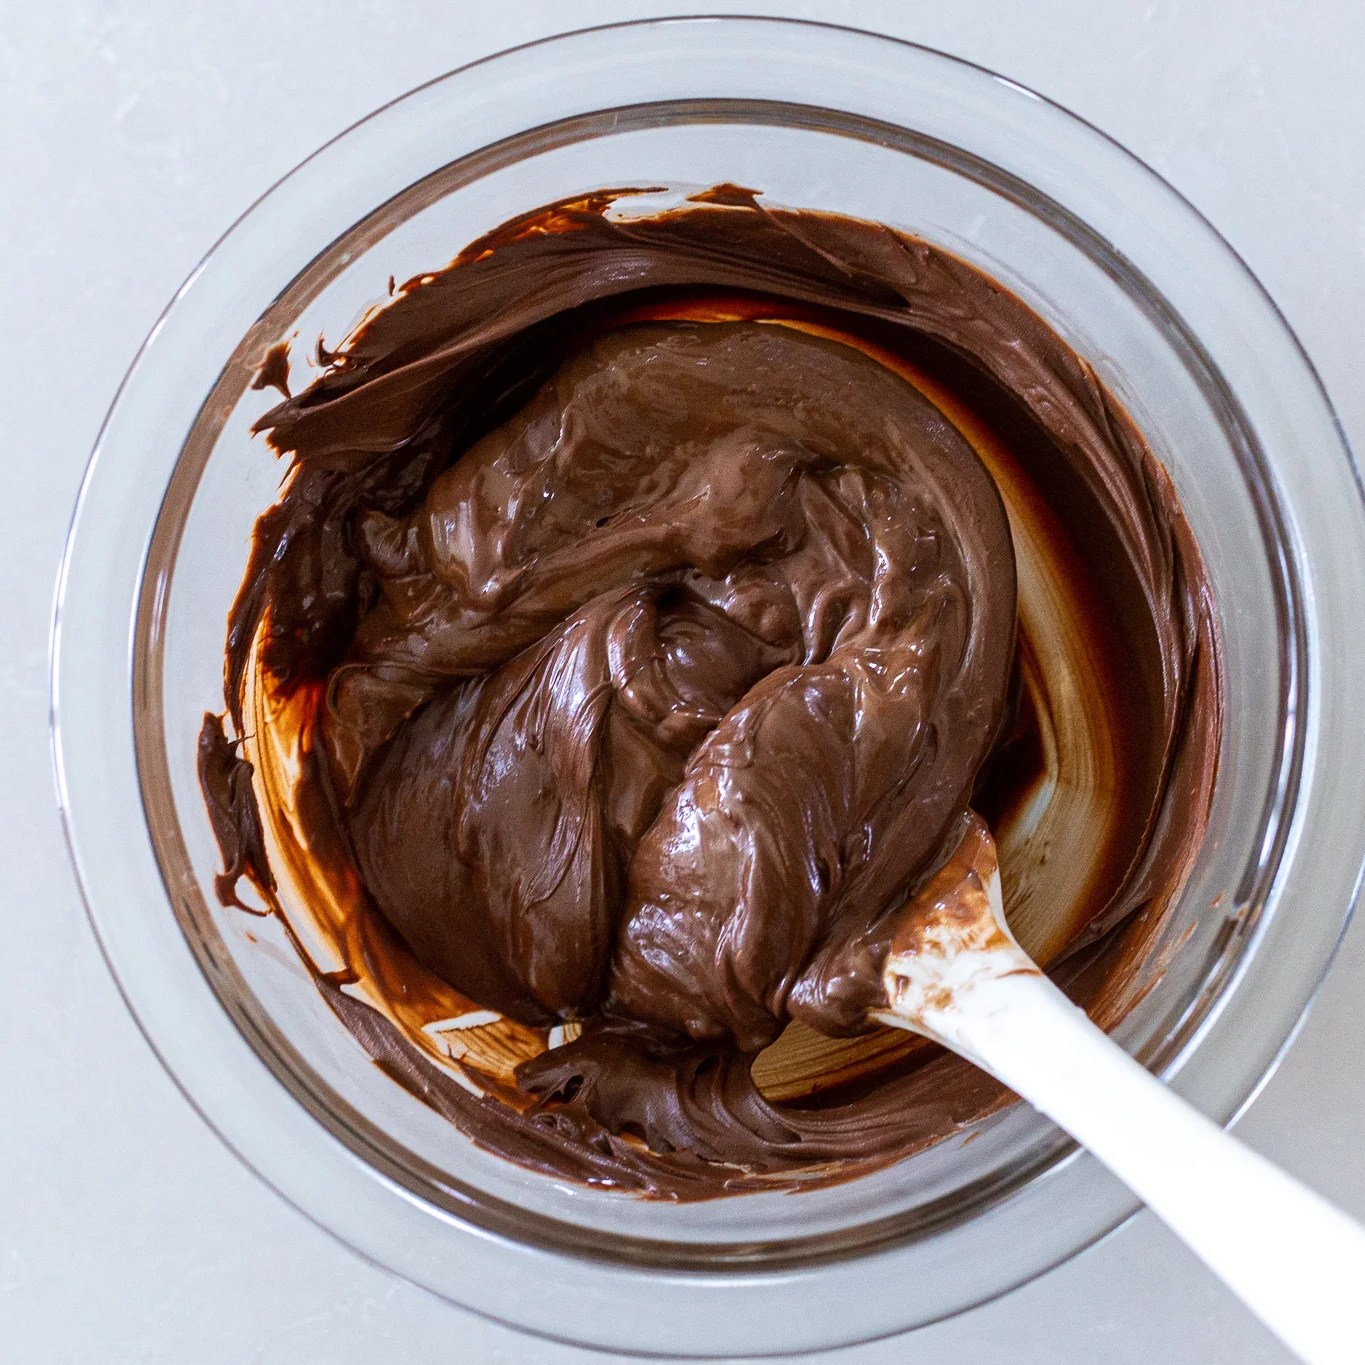 chocolate and nutella in a bowl